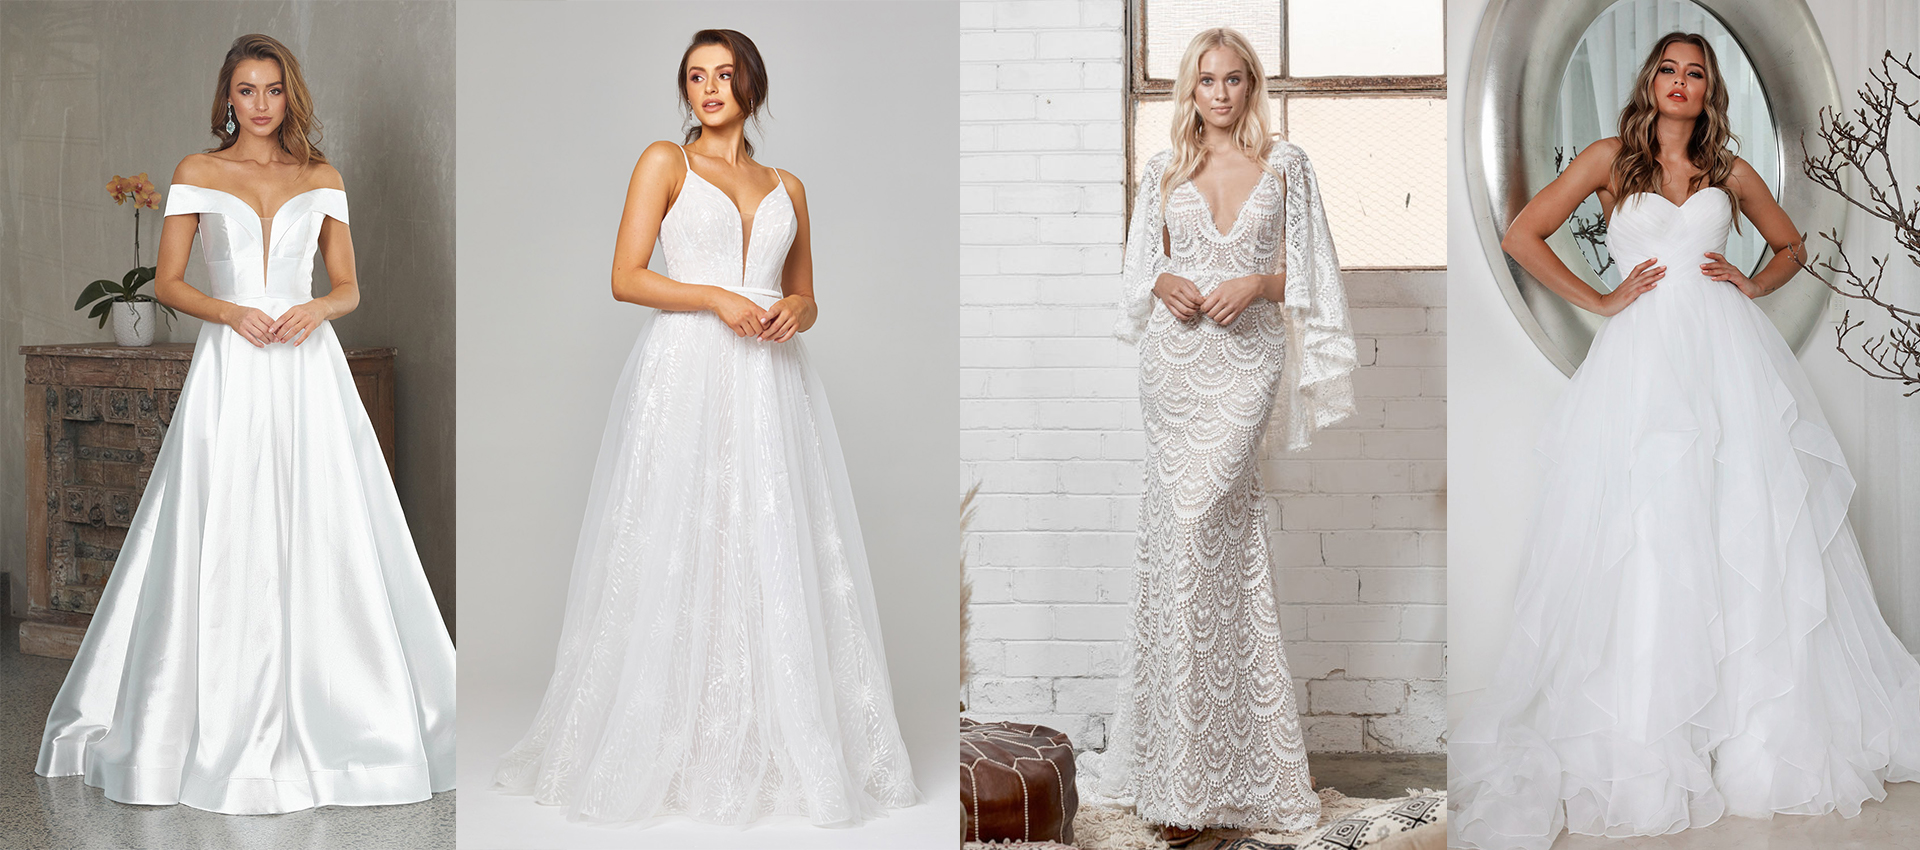 Wedding Dress Trends of 2021